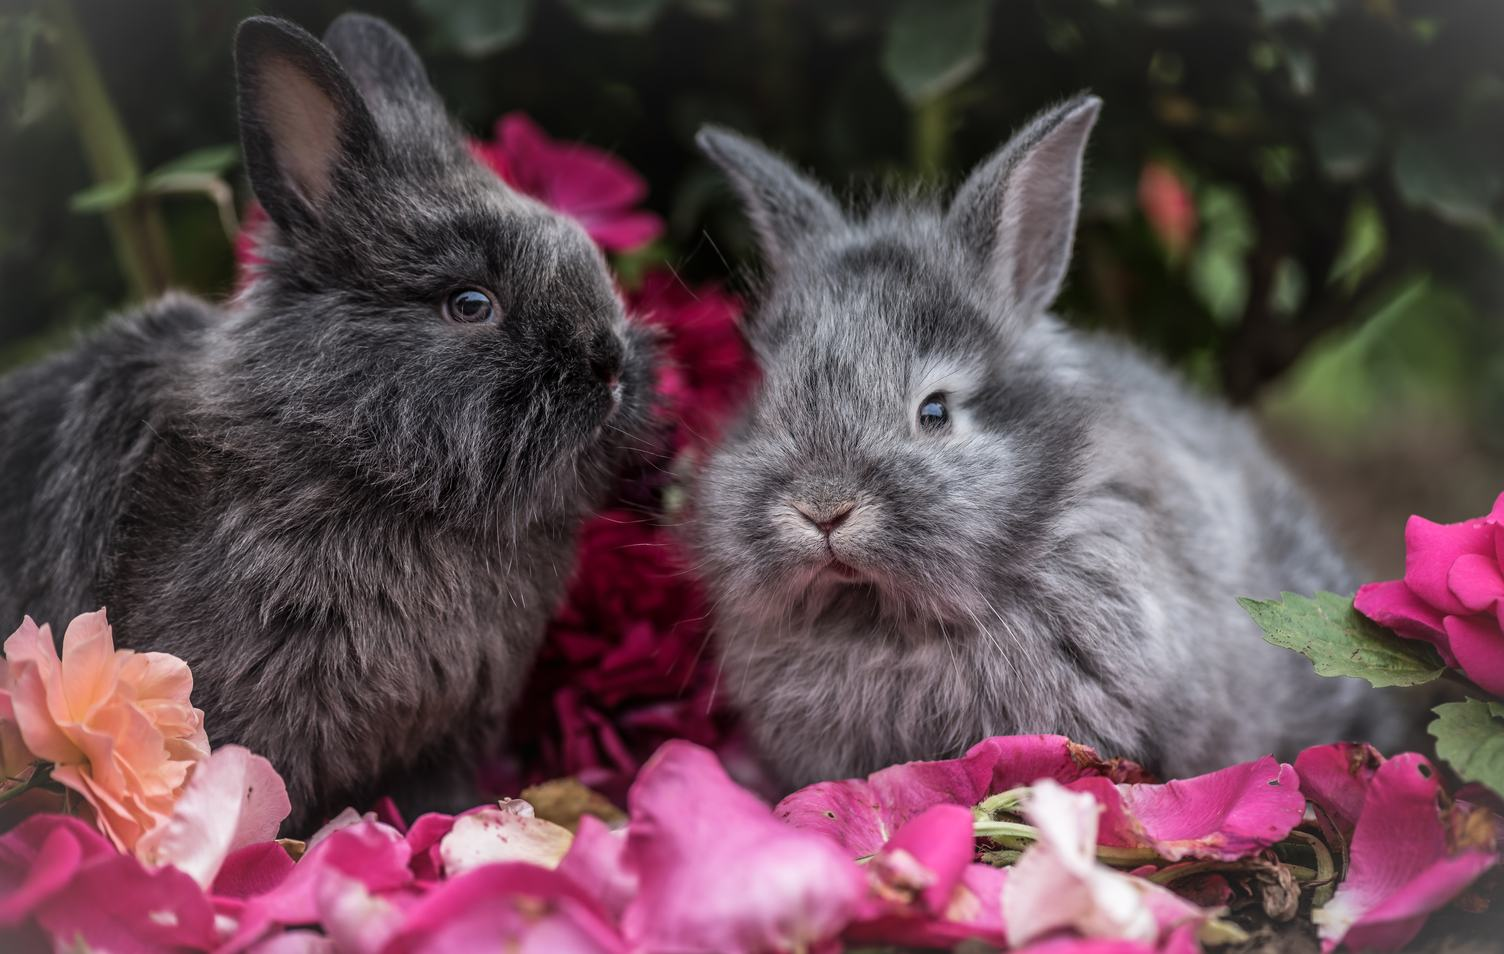 Two Little Gray Dwarf Rabbits Sitting Outdoors